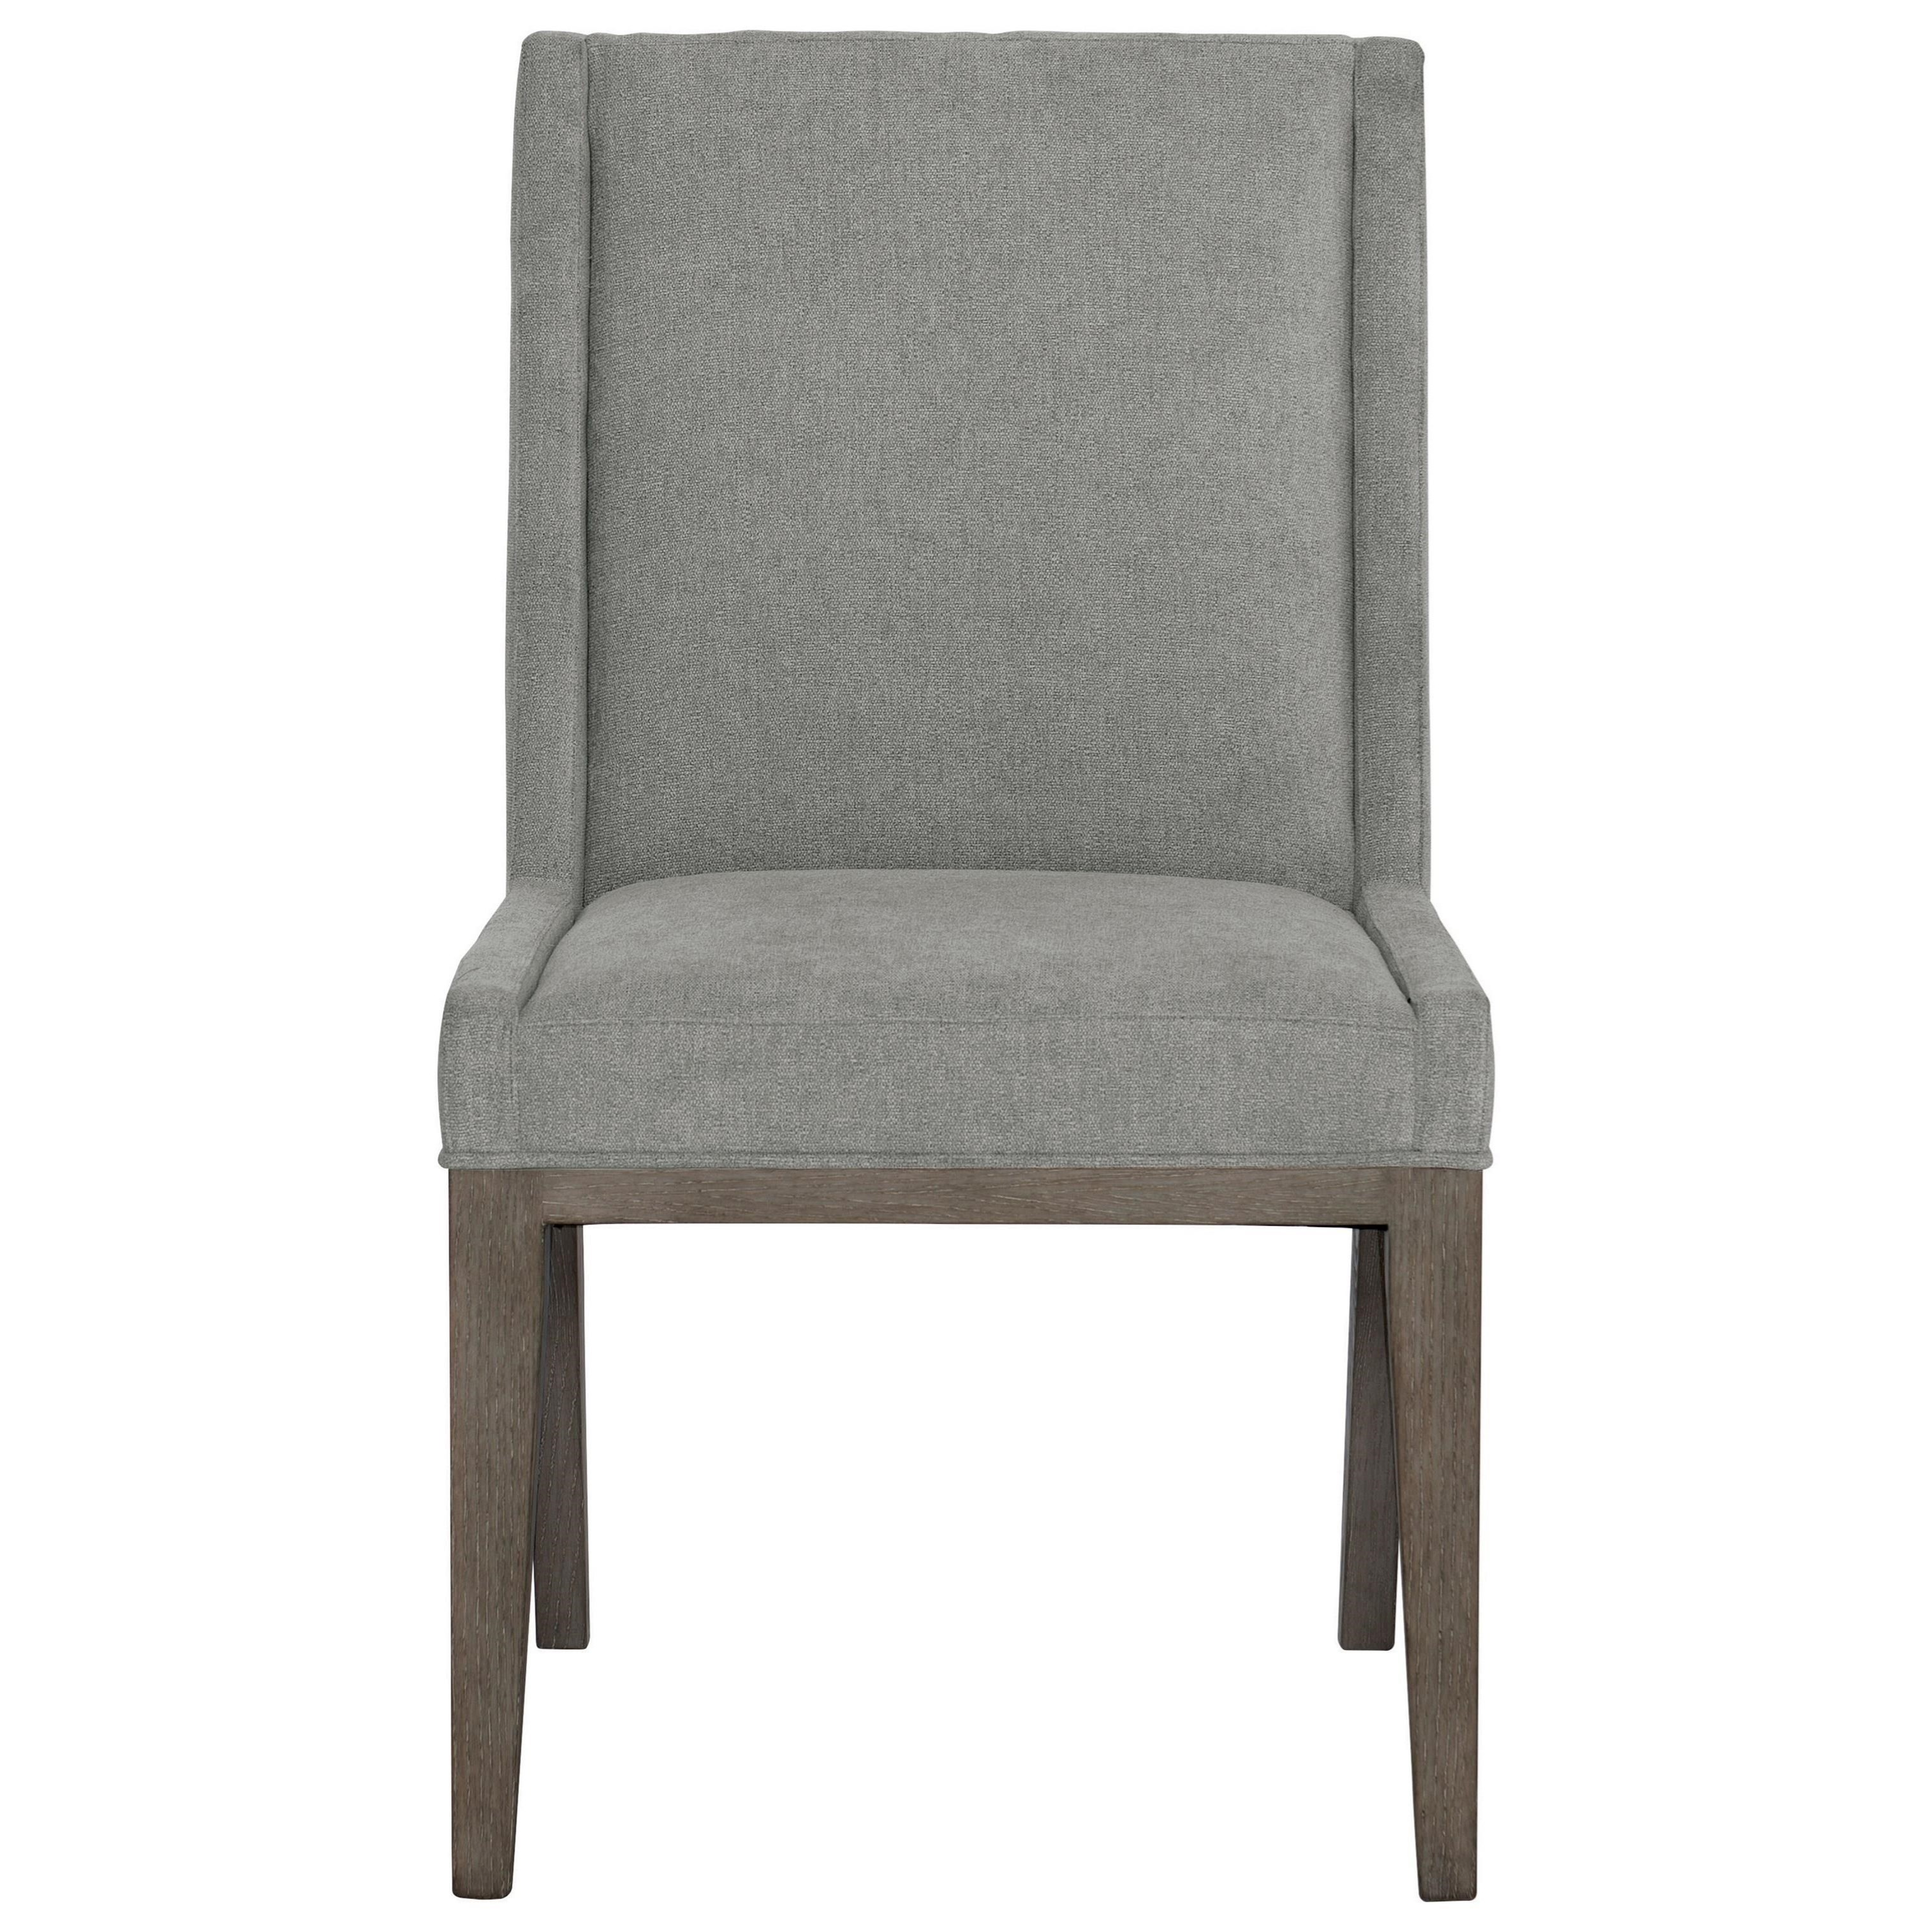 Linea Customizable Upholstered Side Chair at Williams & Kay